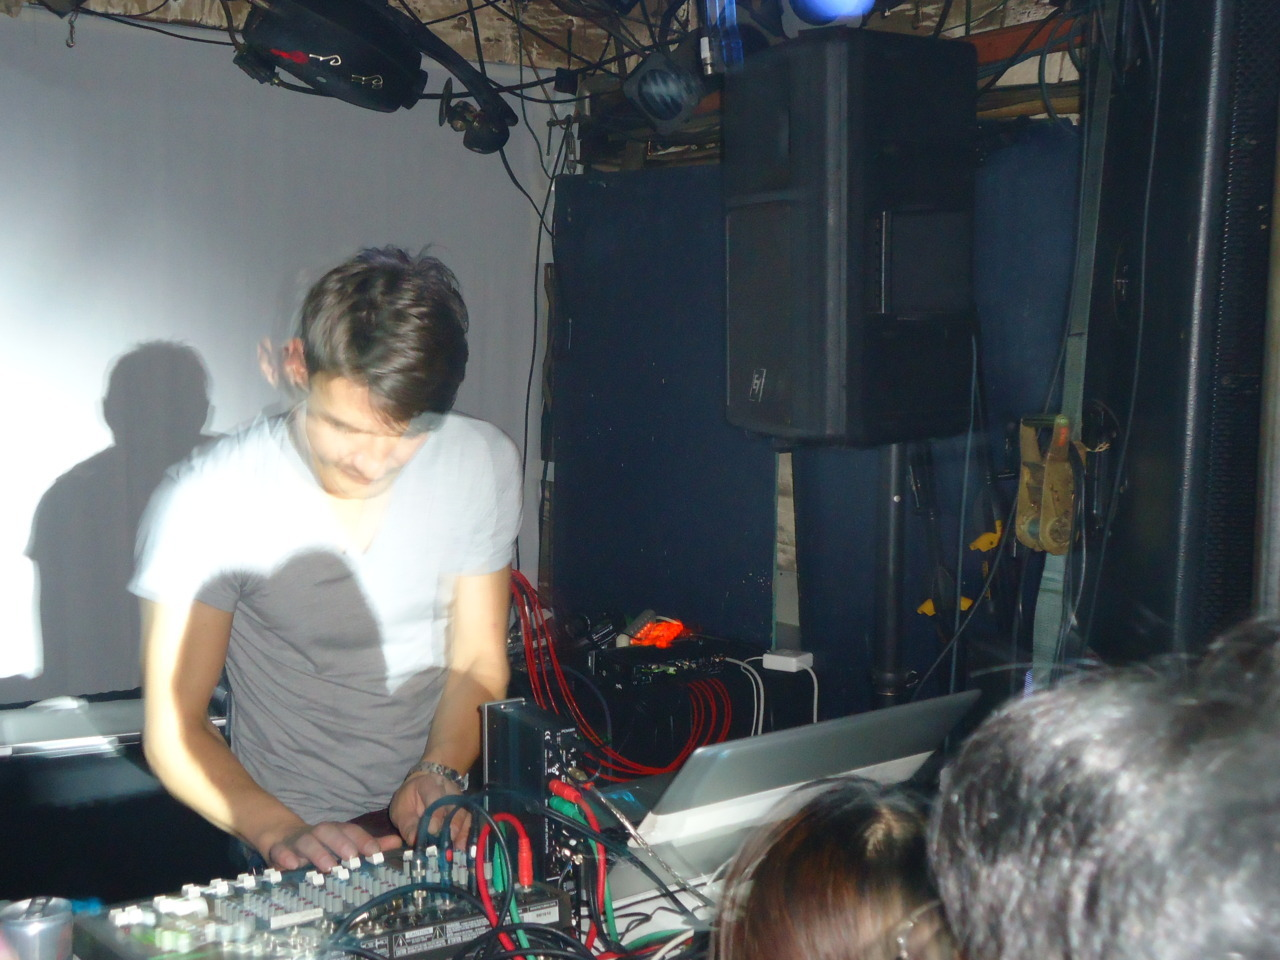 Raster Noton 15th Anniversary Japan Tour.Club Metro, Kyoto. Pics = kinda meh, but whaddya want from a little Sony Cybershot?